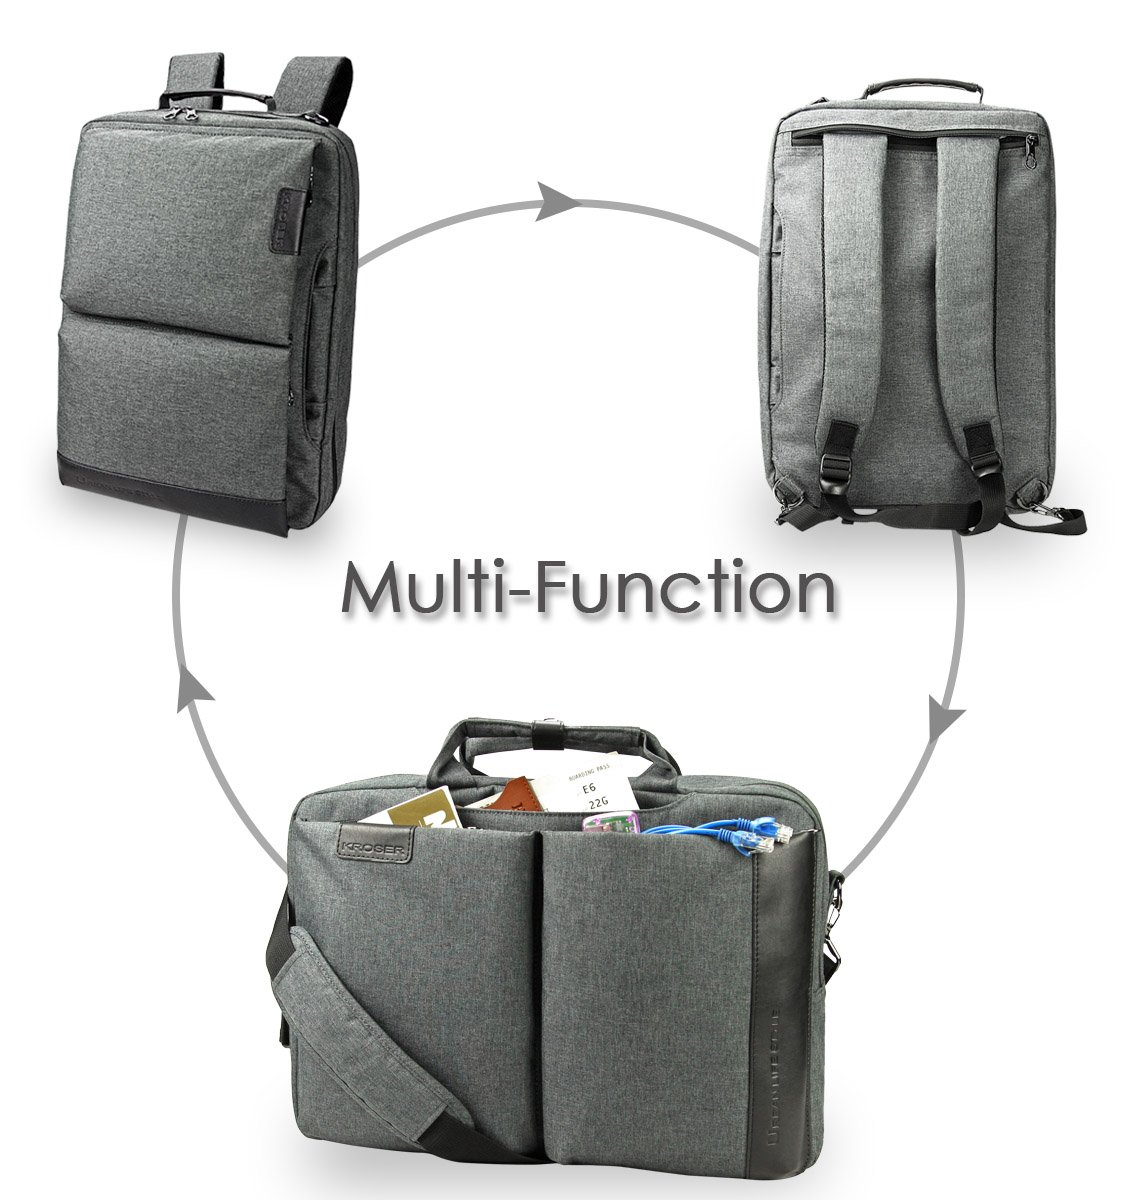 70% off Multi-Function 2 in 1 Computer Backpack Rucksack Urban Laptop Bag